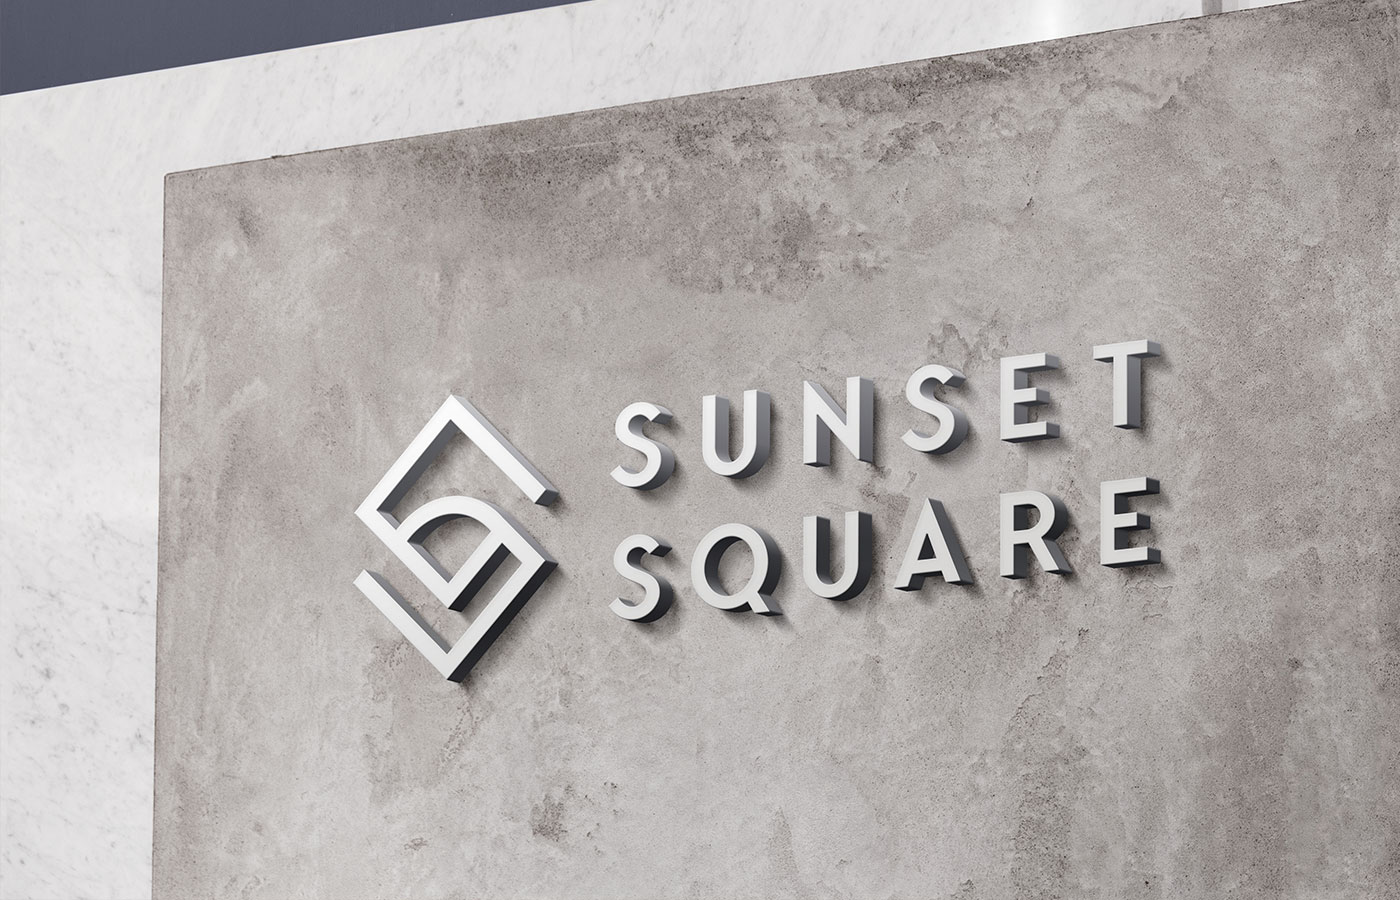 covetdesign_logo-design_branding_package-design_graphic-design_vancouver_work_wide_sunsetsquare_sign